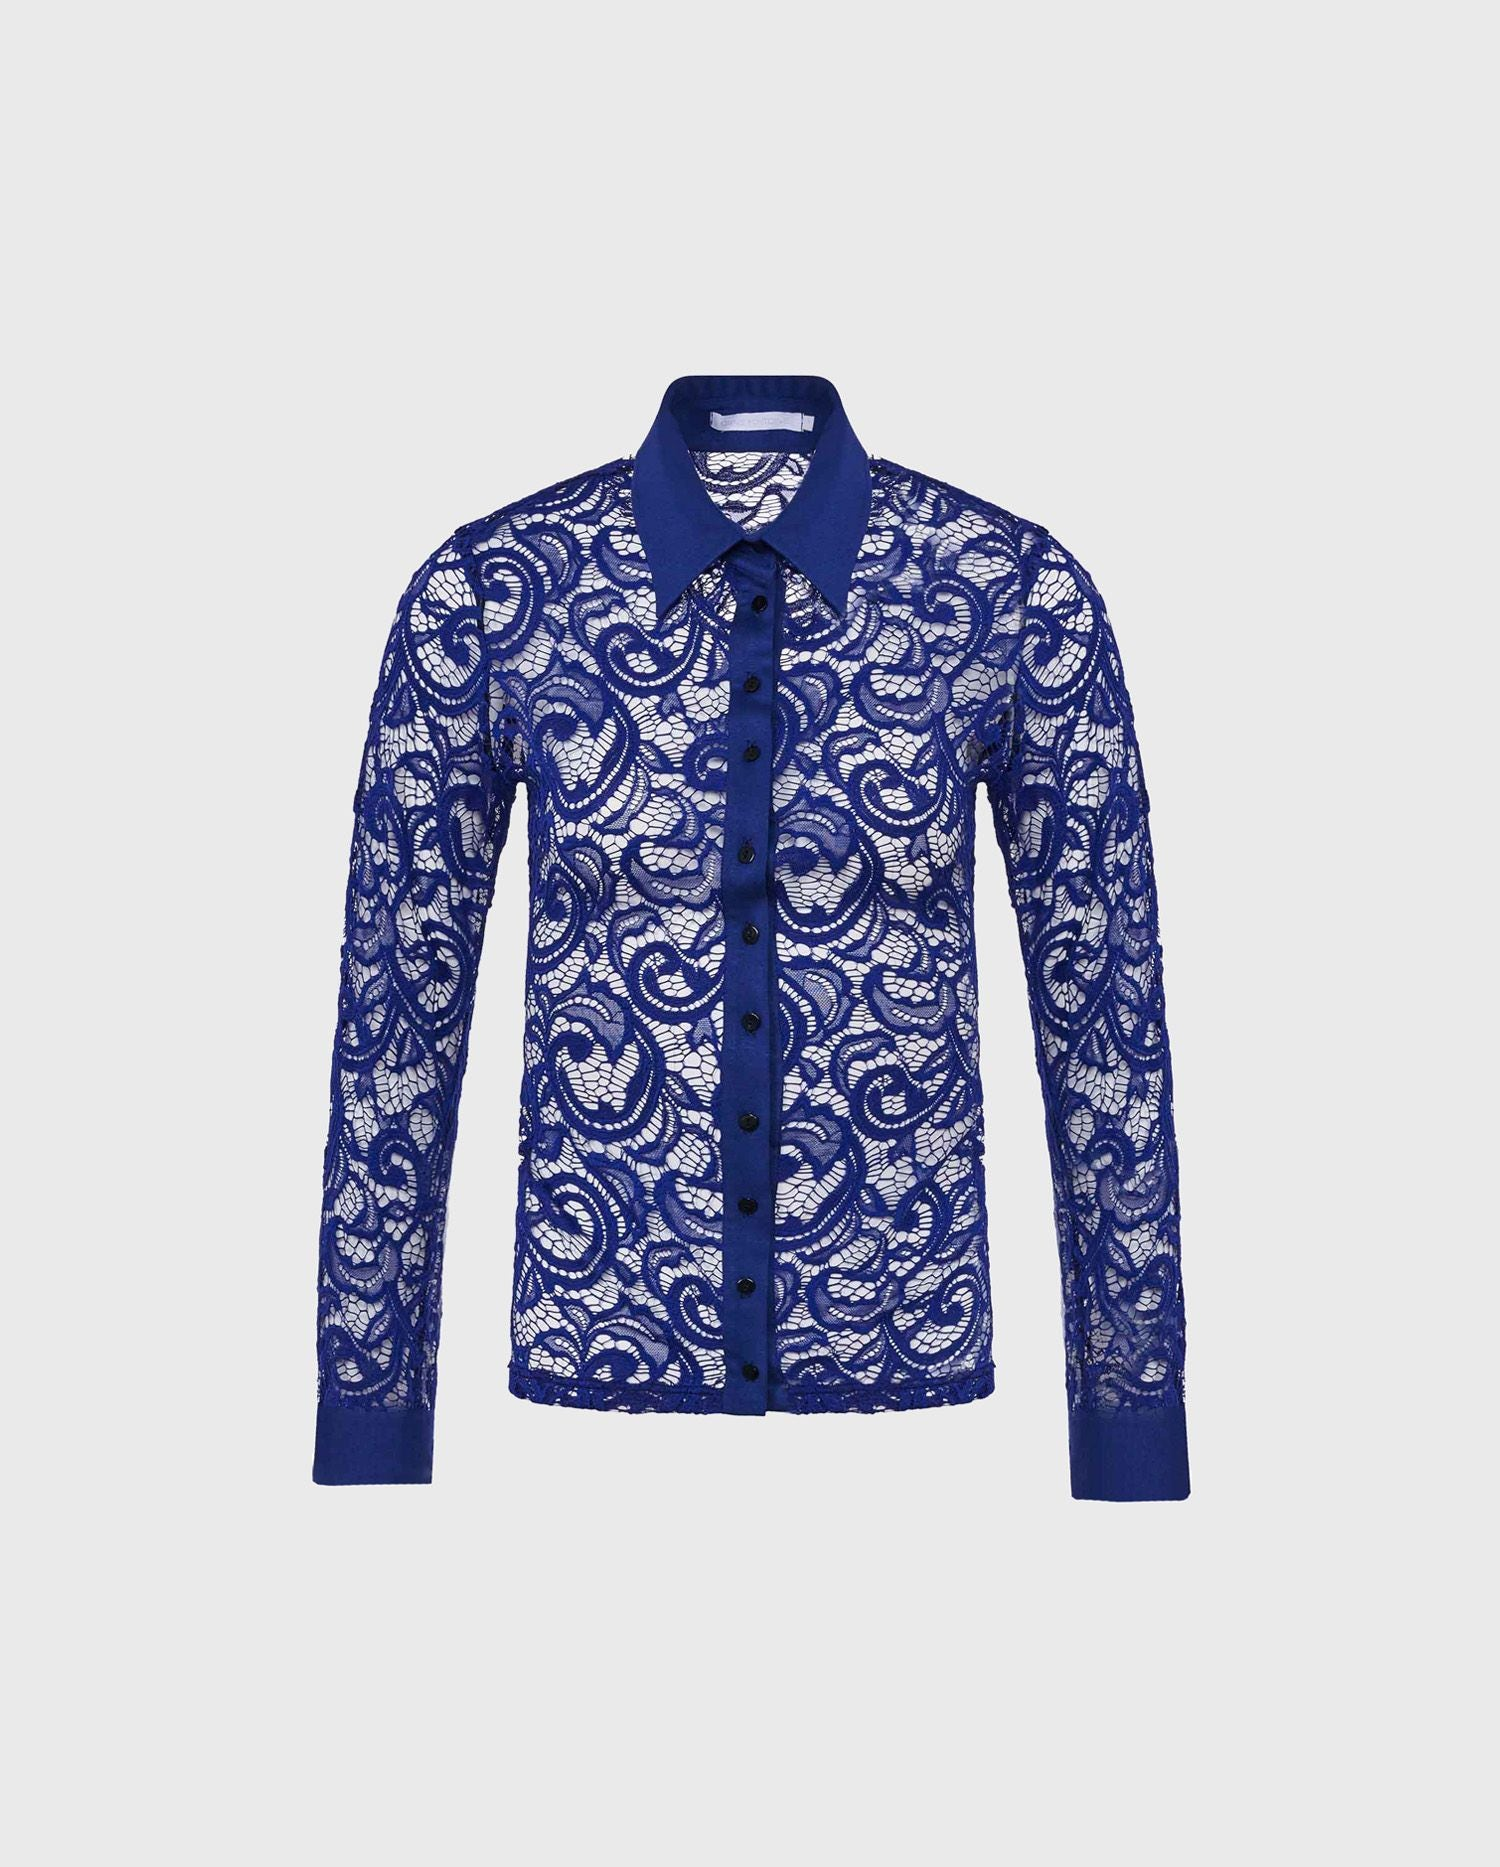 The LYS-Ultra Blue lace button down shirt adds a dose of chic to your wardrobe.